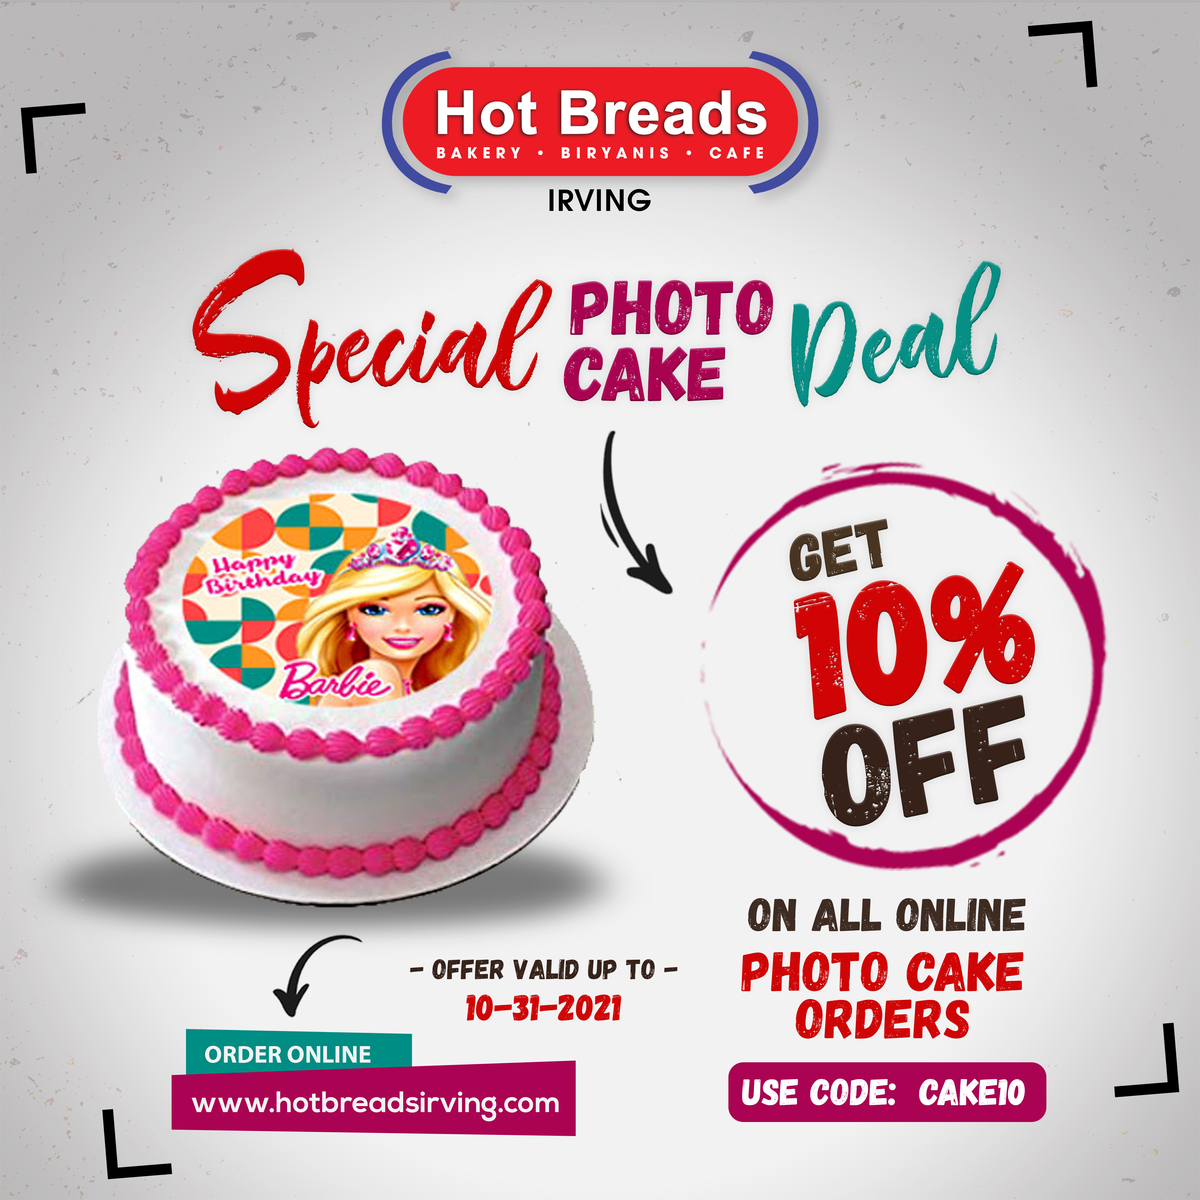 Special Photo Cake Deal